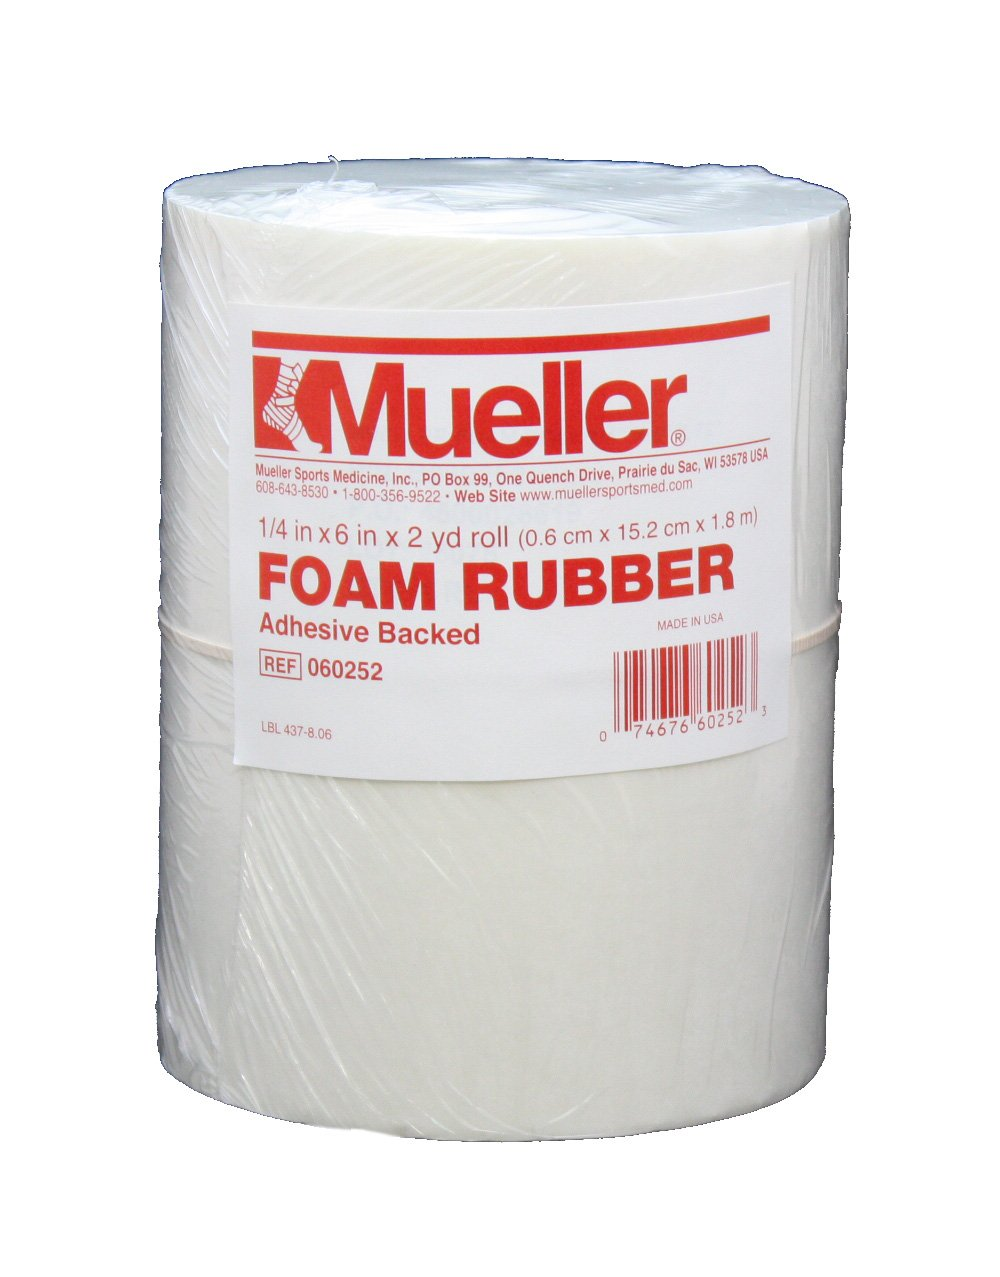 Mueller Foam Rubber - Adhesive backed, open cell, 1/4'' x 6'' x 2 yd roll